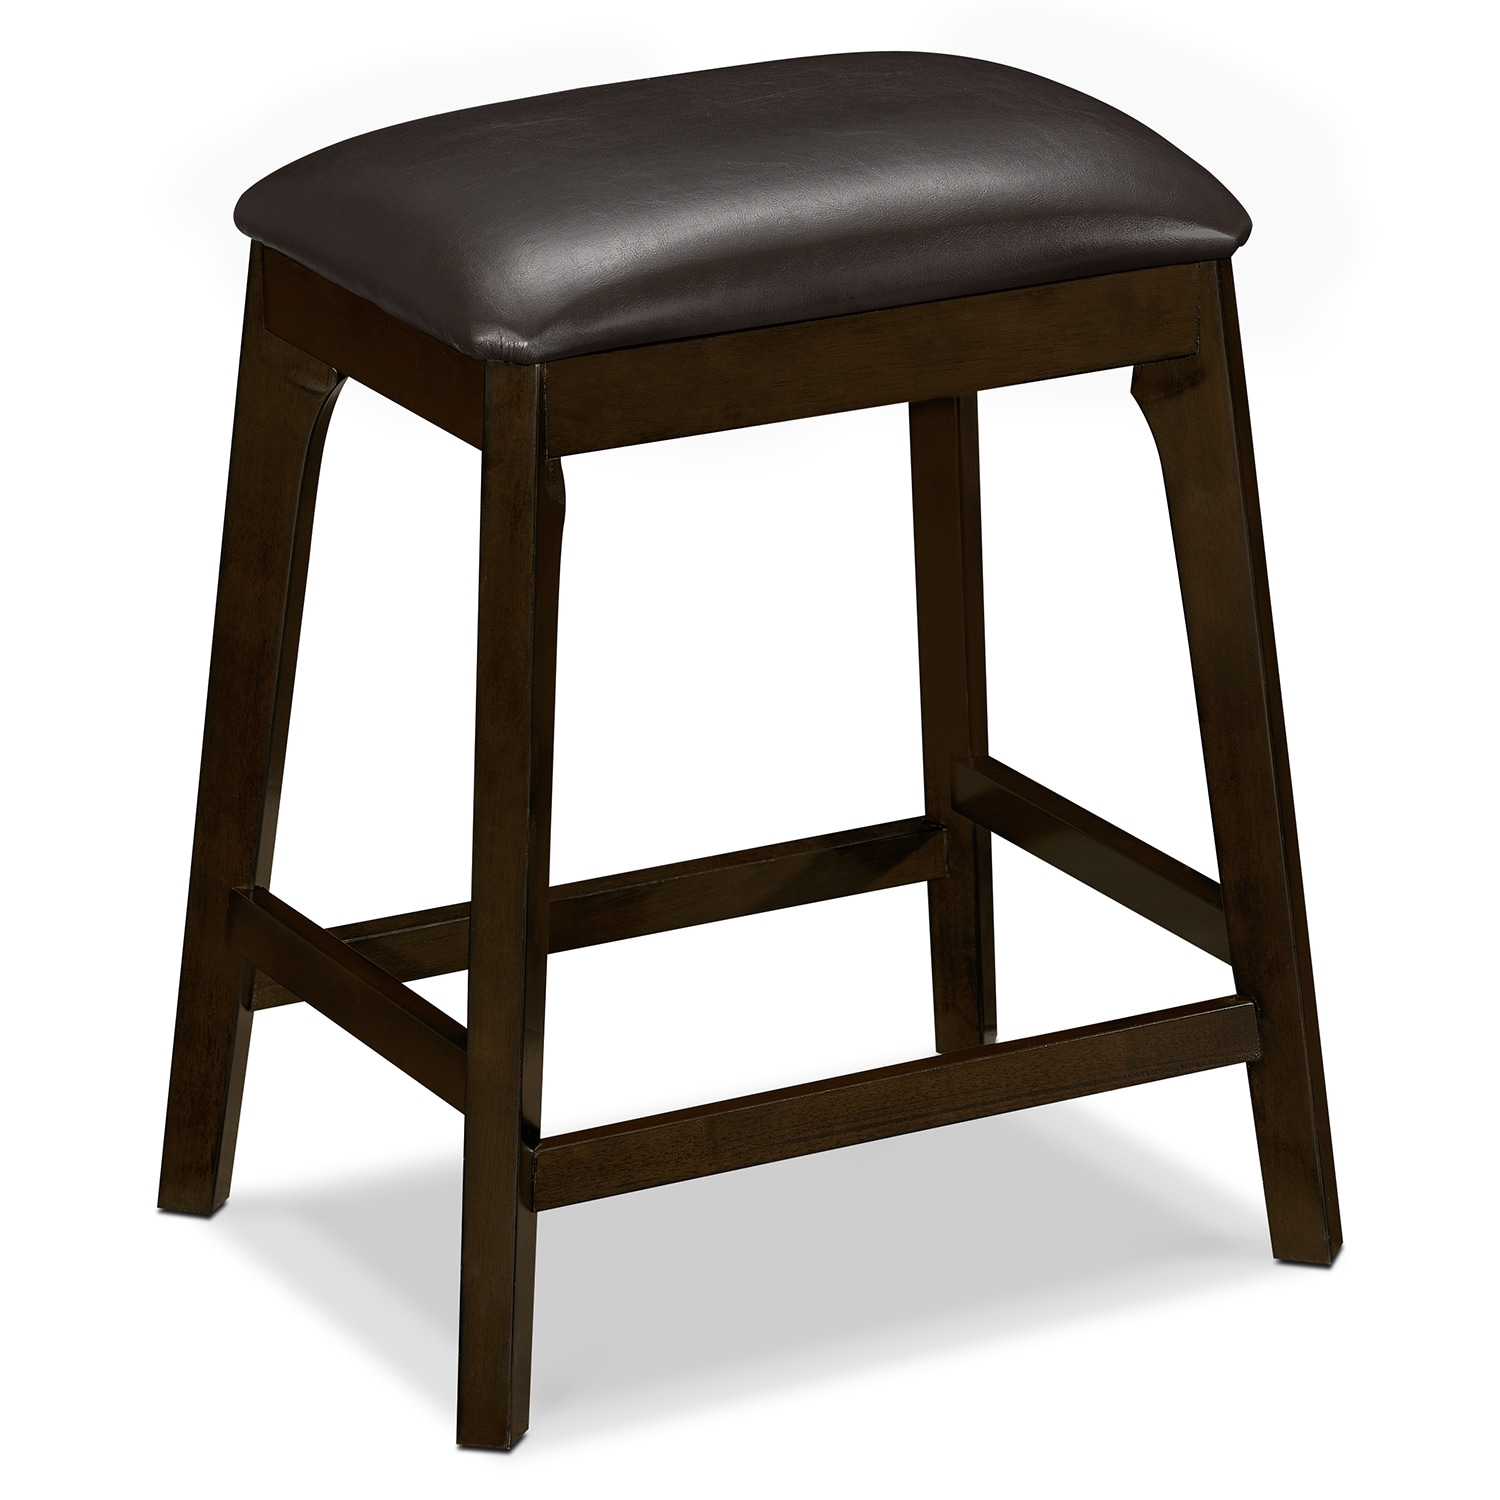 Mystic Backless Counter-Height Stool - Merlot and Chocolate